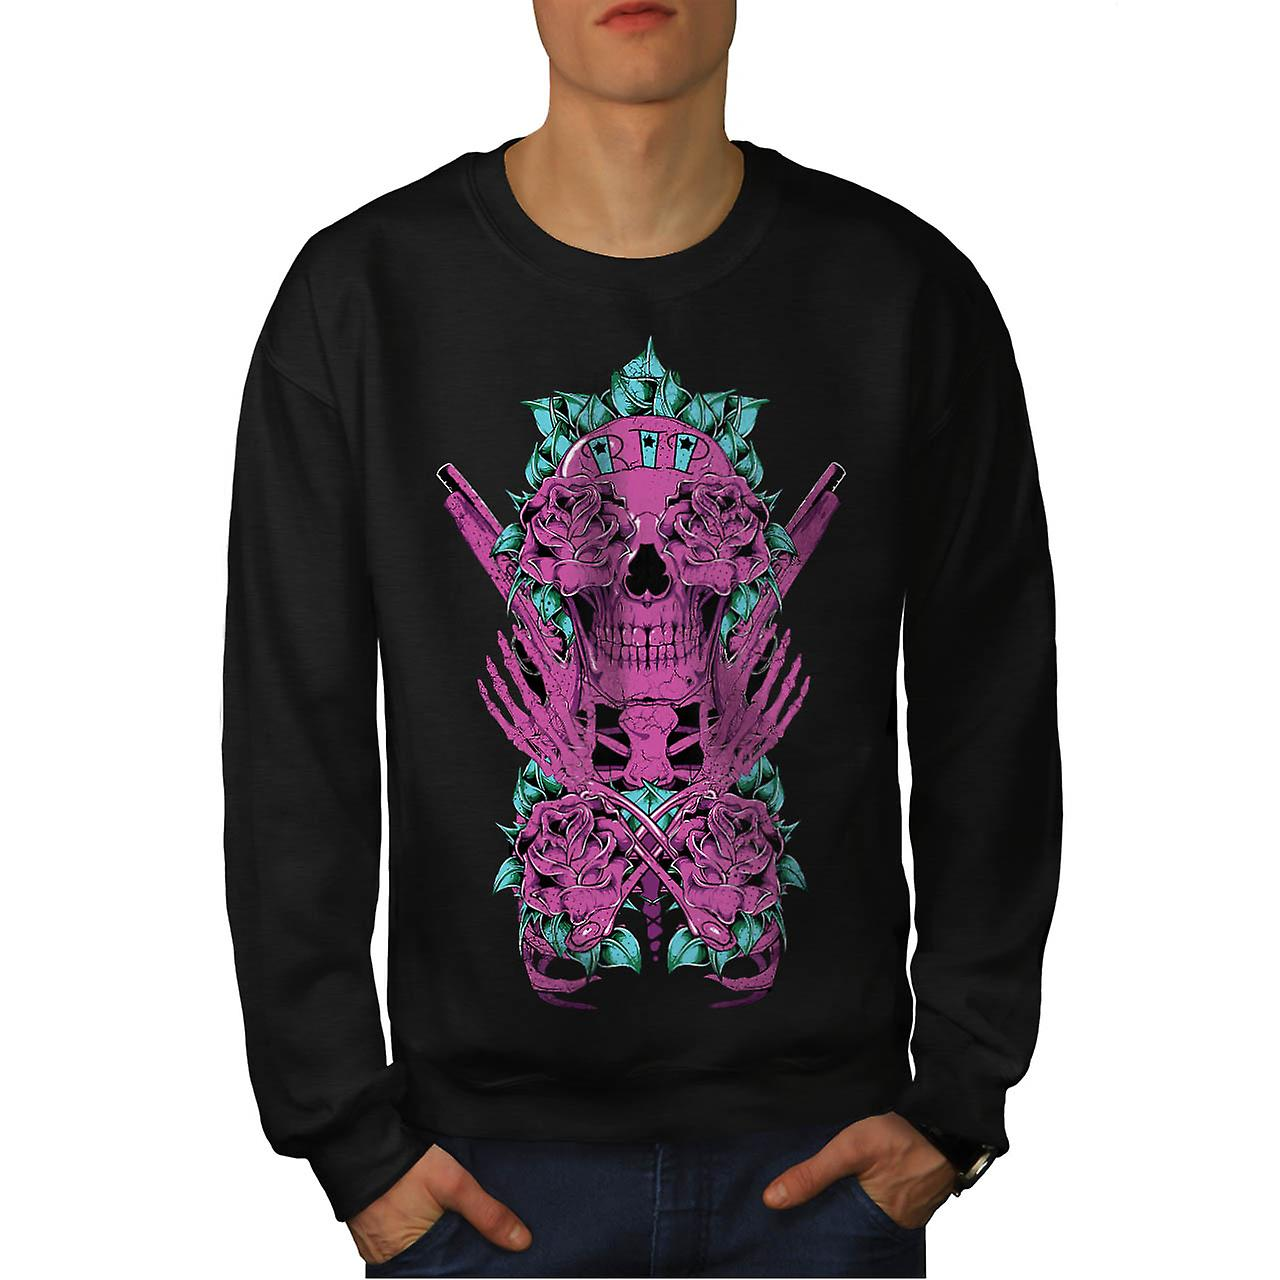 RIP Graveyard Skull Burial Land Men Black Sweatshirt | Wellcoda